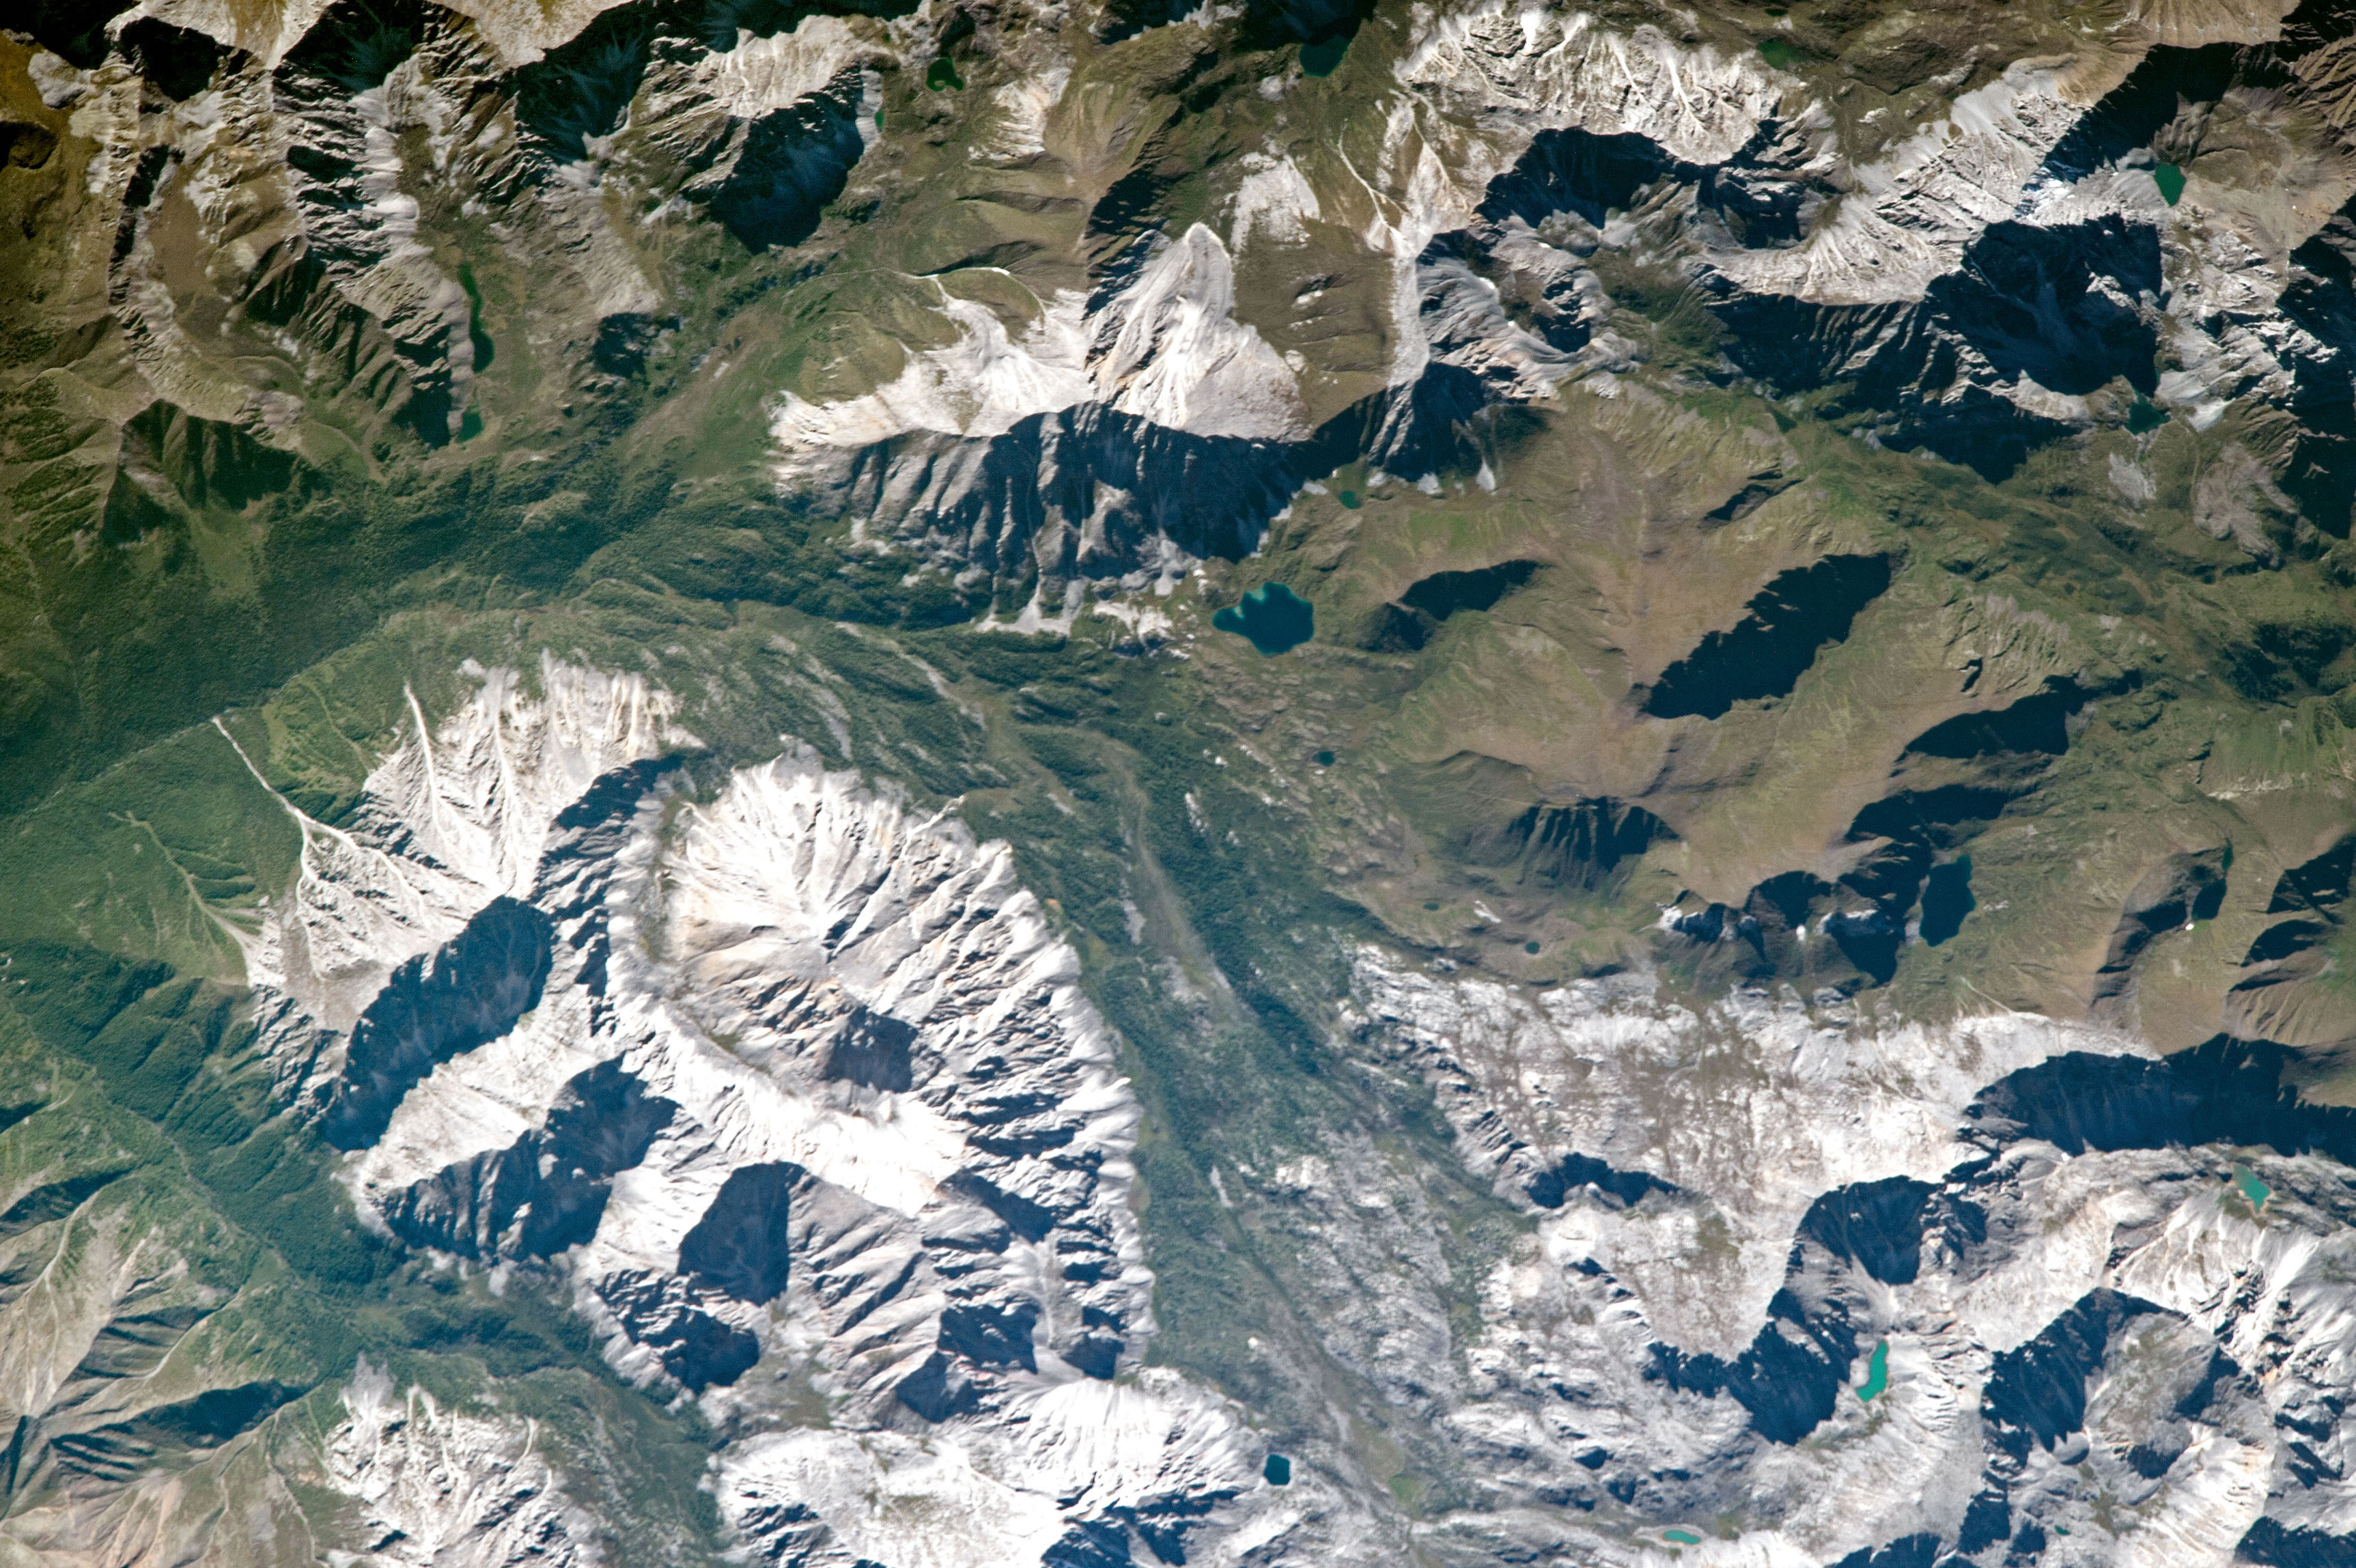 Today's Image of the Day comes from the NASA Earth Observatory and features a look at the Sayan Mountains located in northern Mongolia.